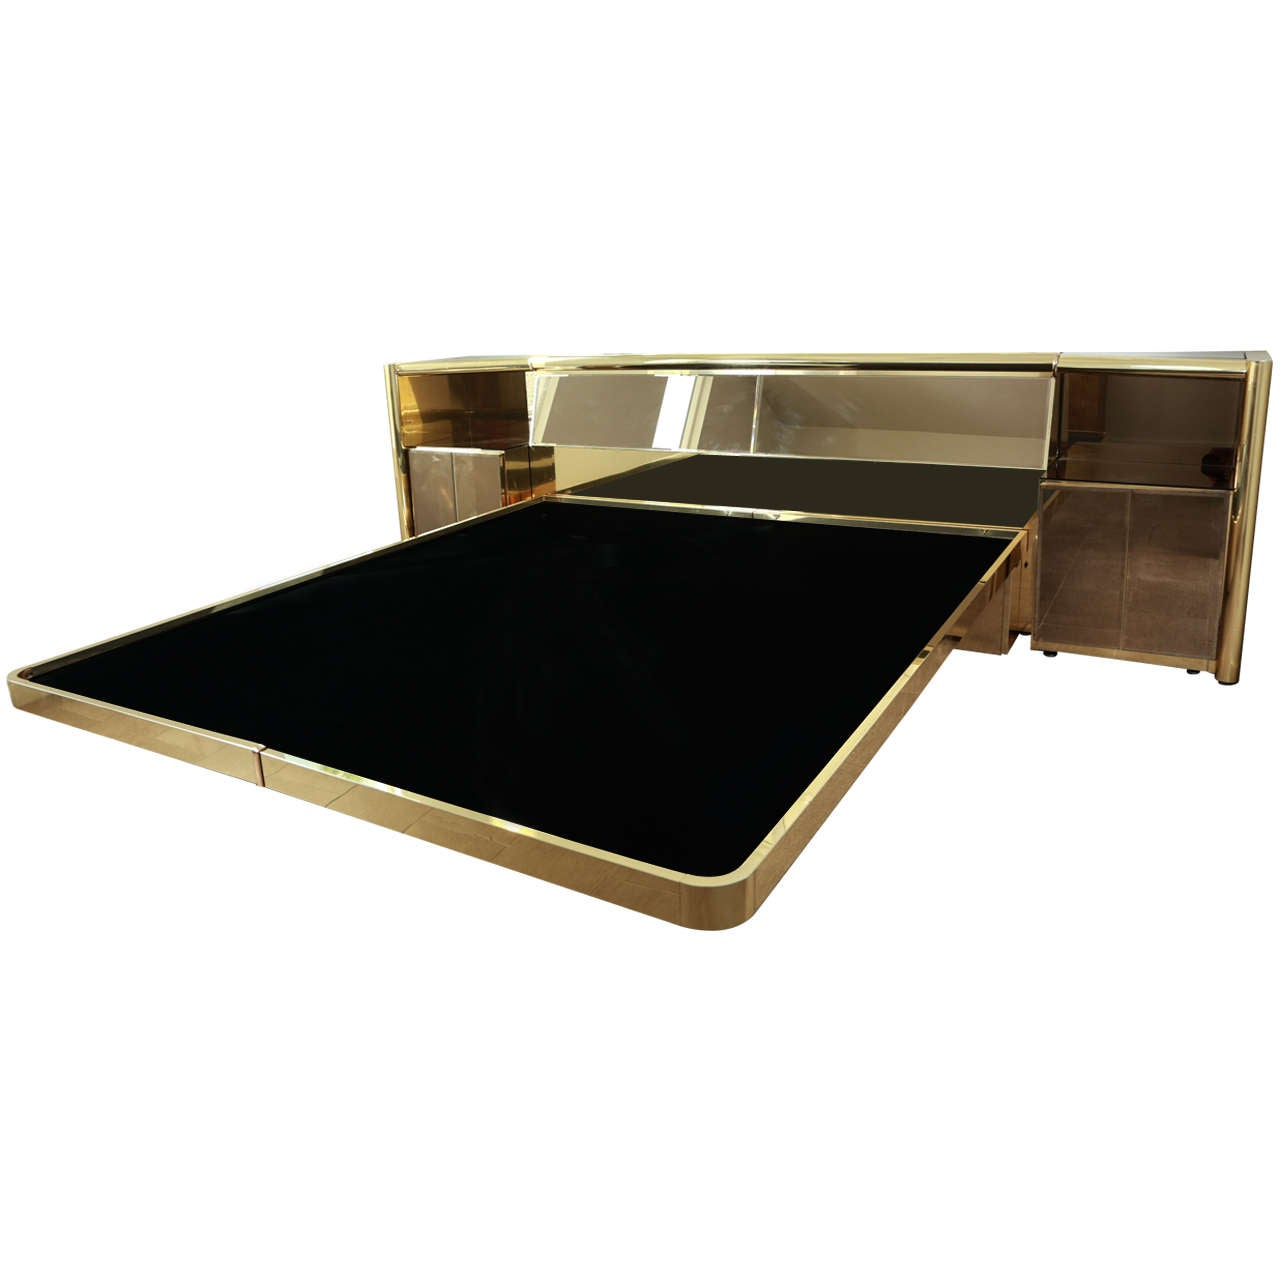 Stunning Brass and  Bronze Mirrored Bed Set by Ello 1